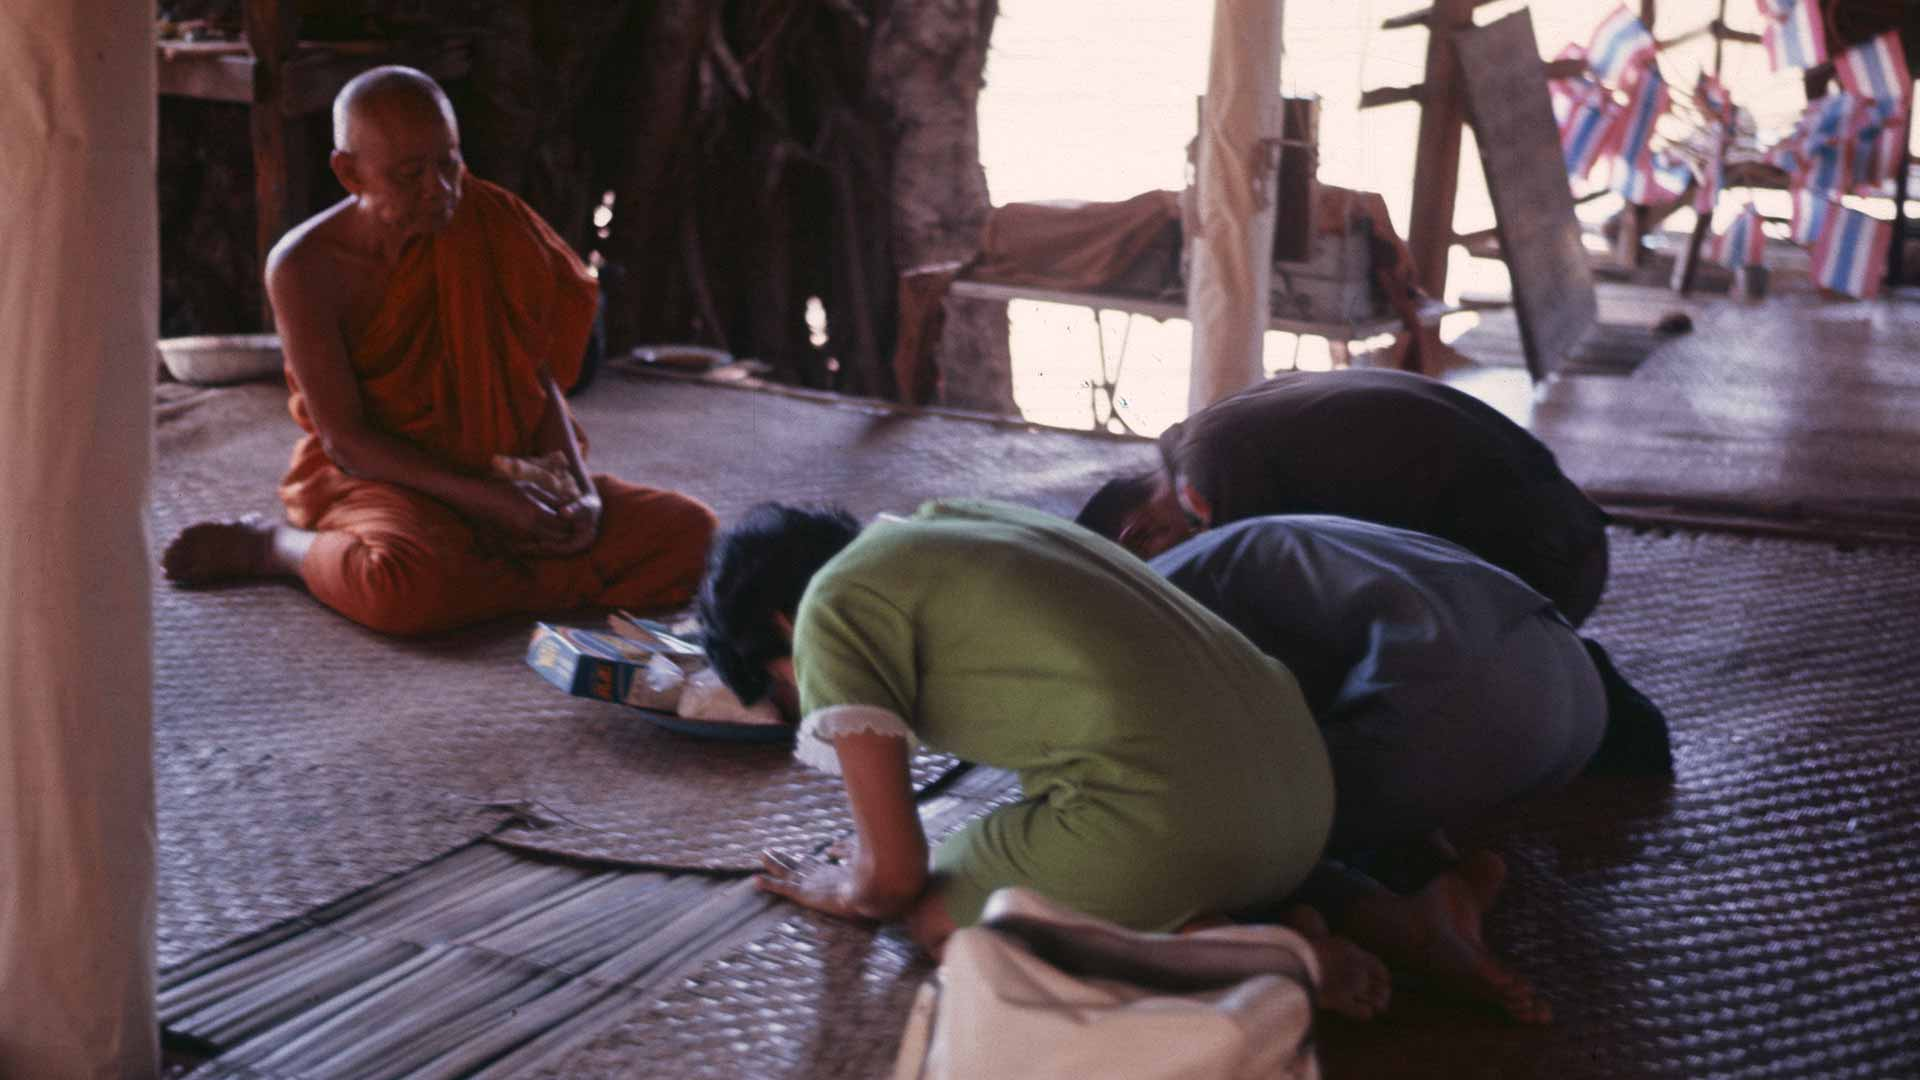 3 people bow their heads and bodies in front of an elder monk